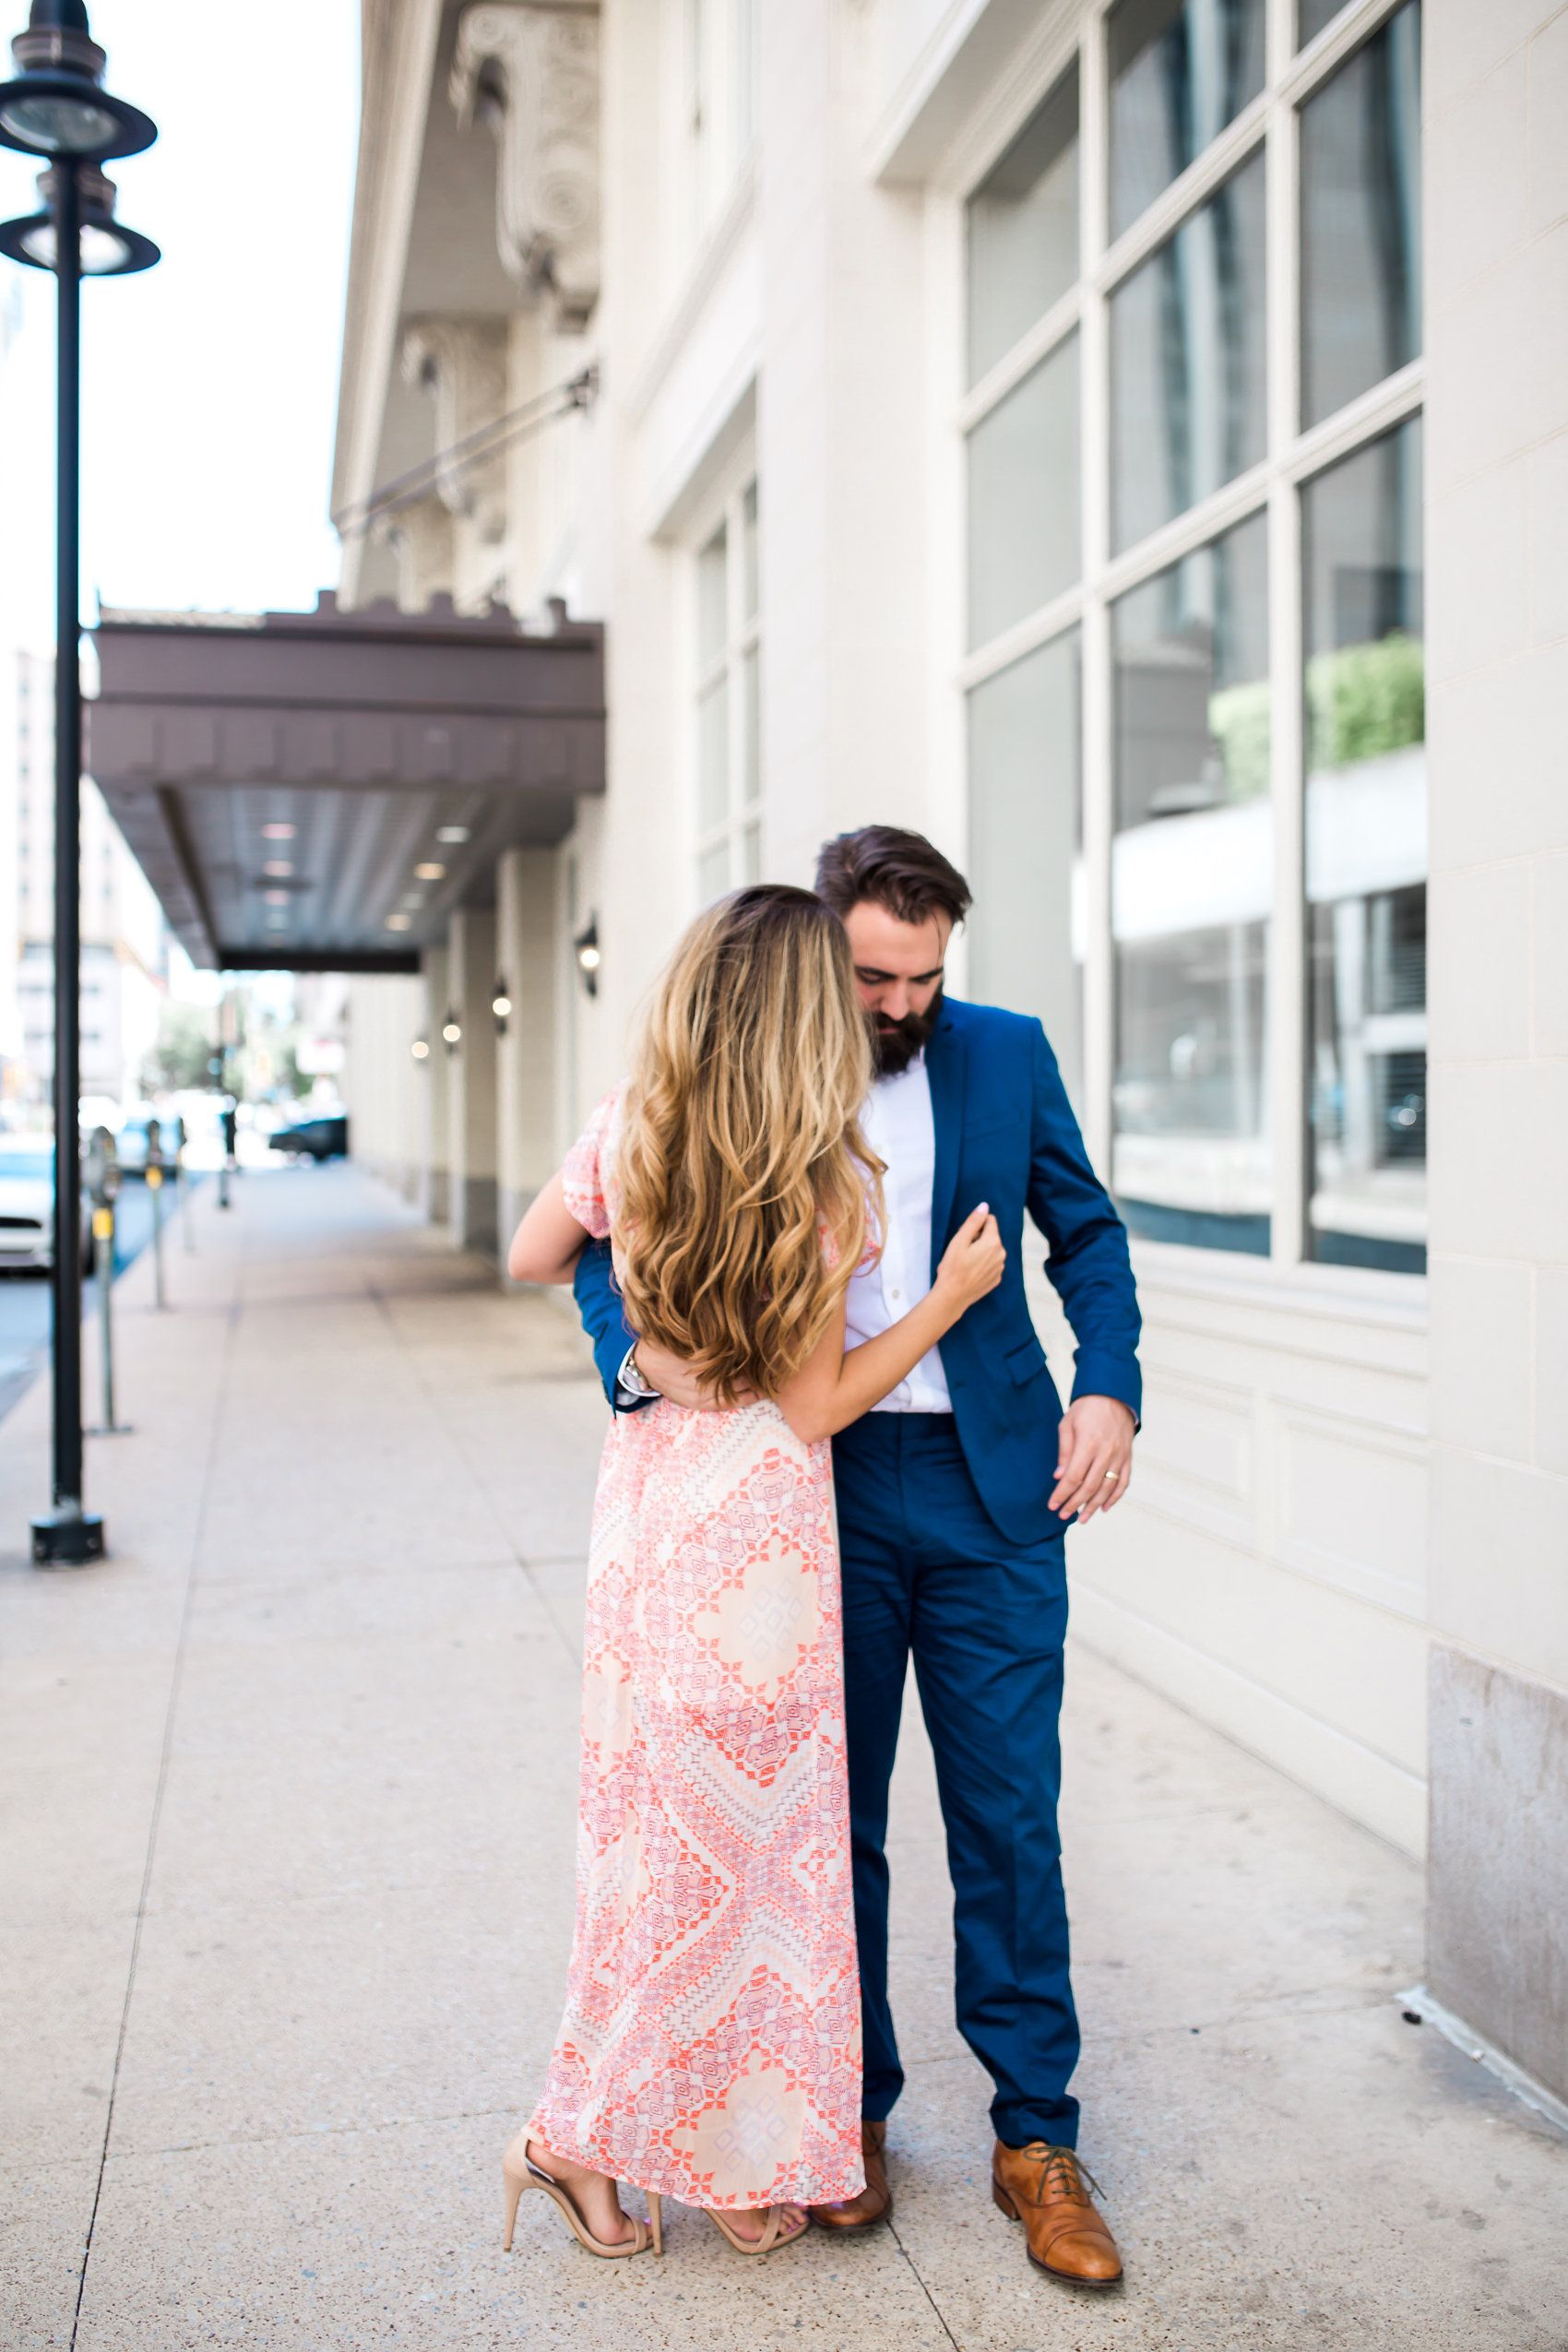 His her wedding guest attire pinterest his her wedding guest attire the teacher diva a dallas fashion blog featuring junglespirit Choice Image